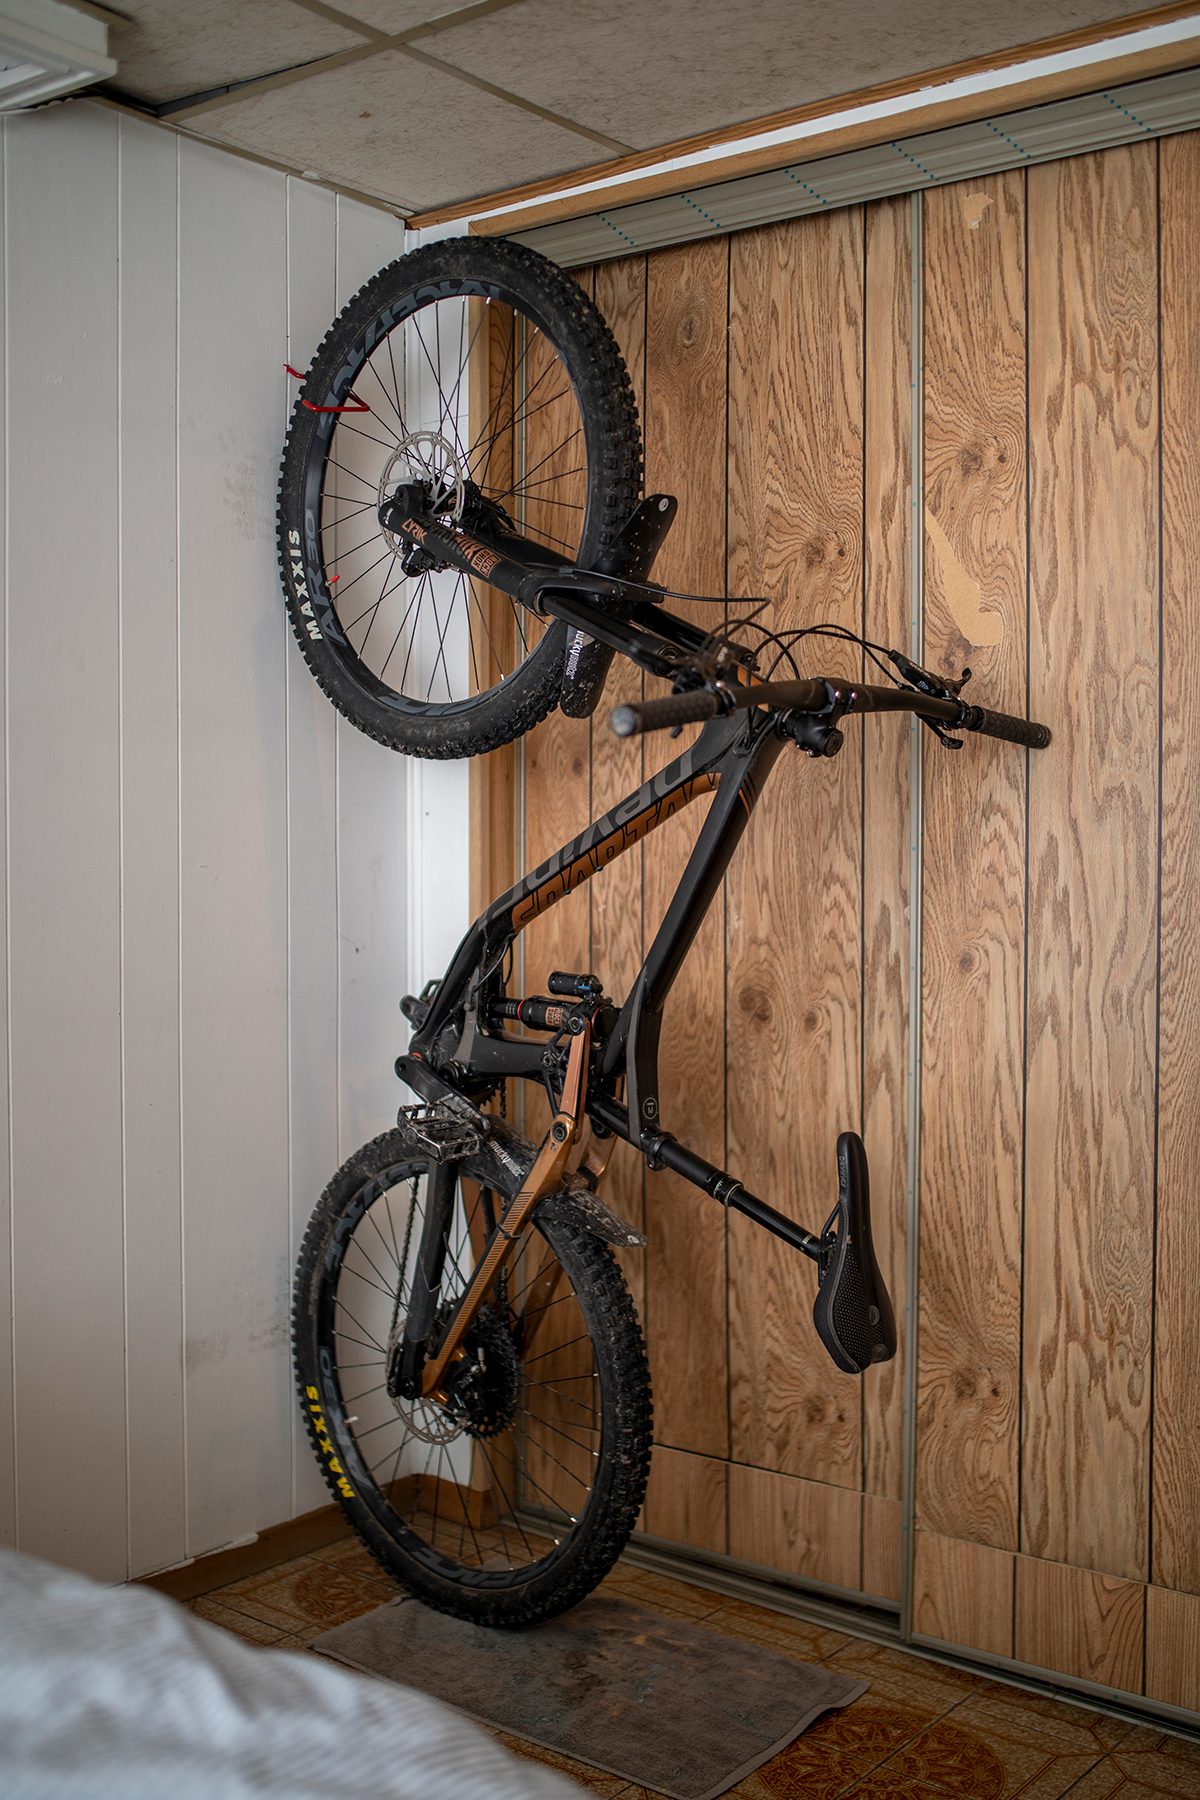 Mountain bike belonging to University of Toronto student Maximilian Regenold